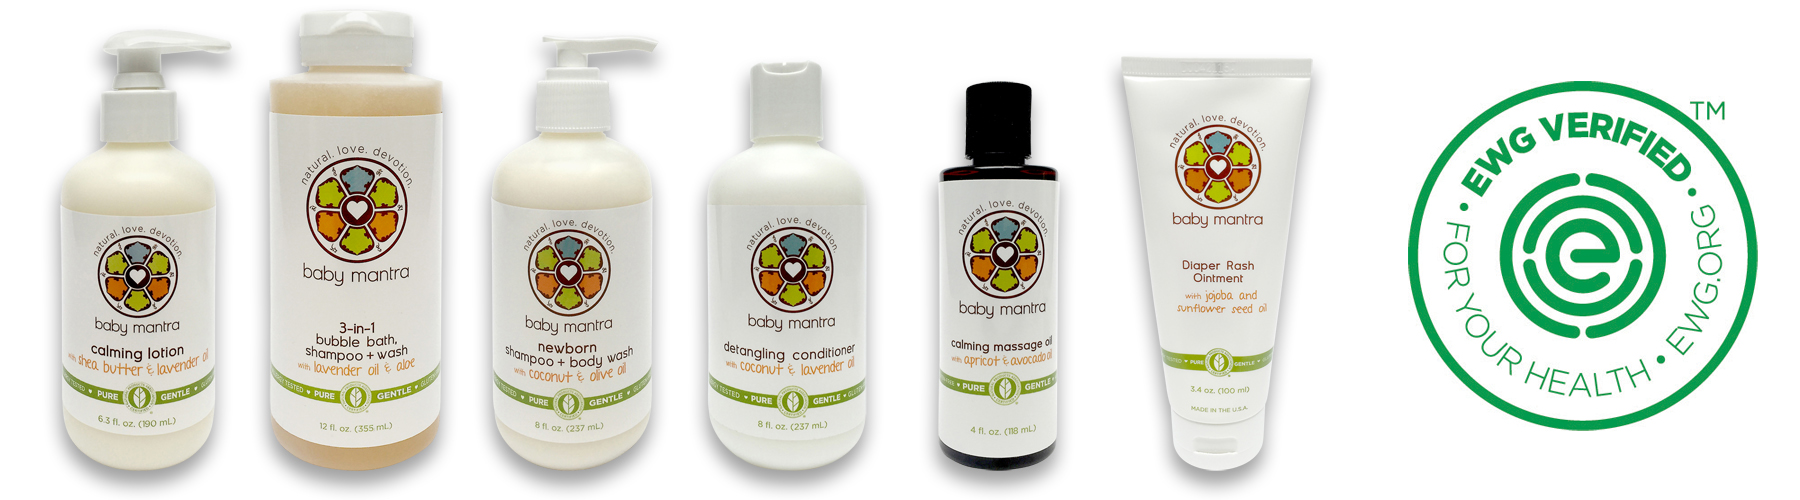 EWG Verified Skin Care Products from Baby Mantra